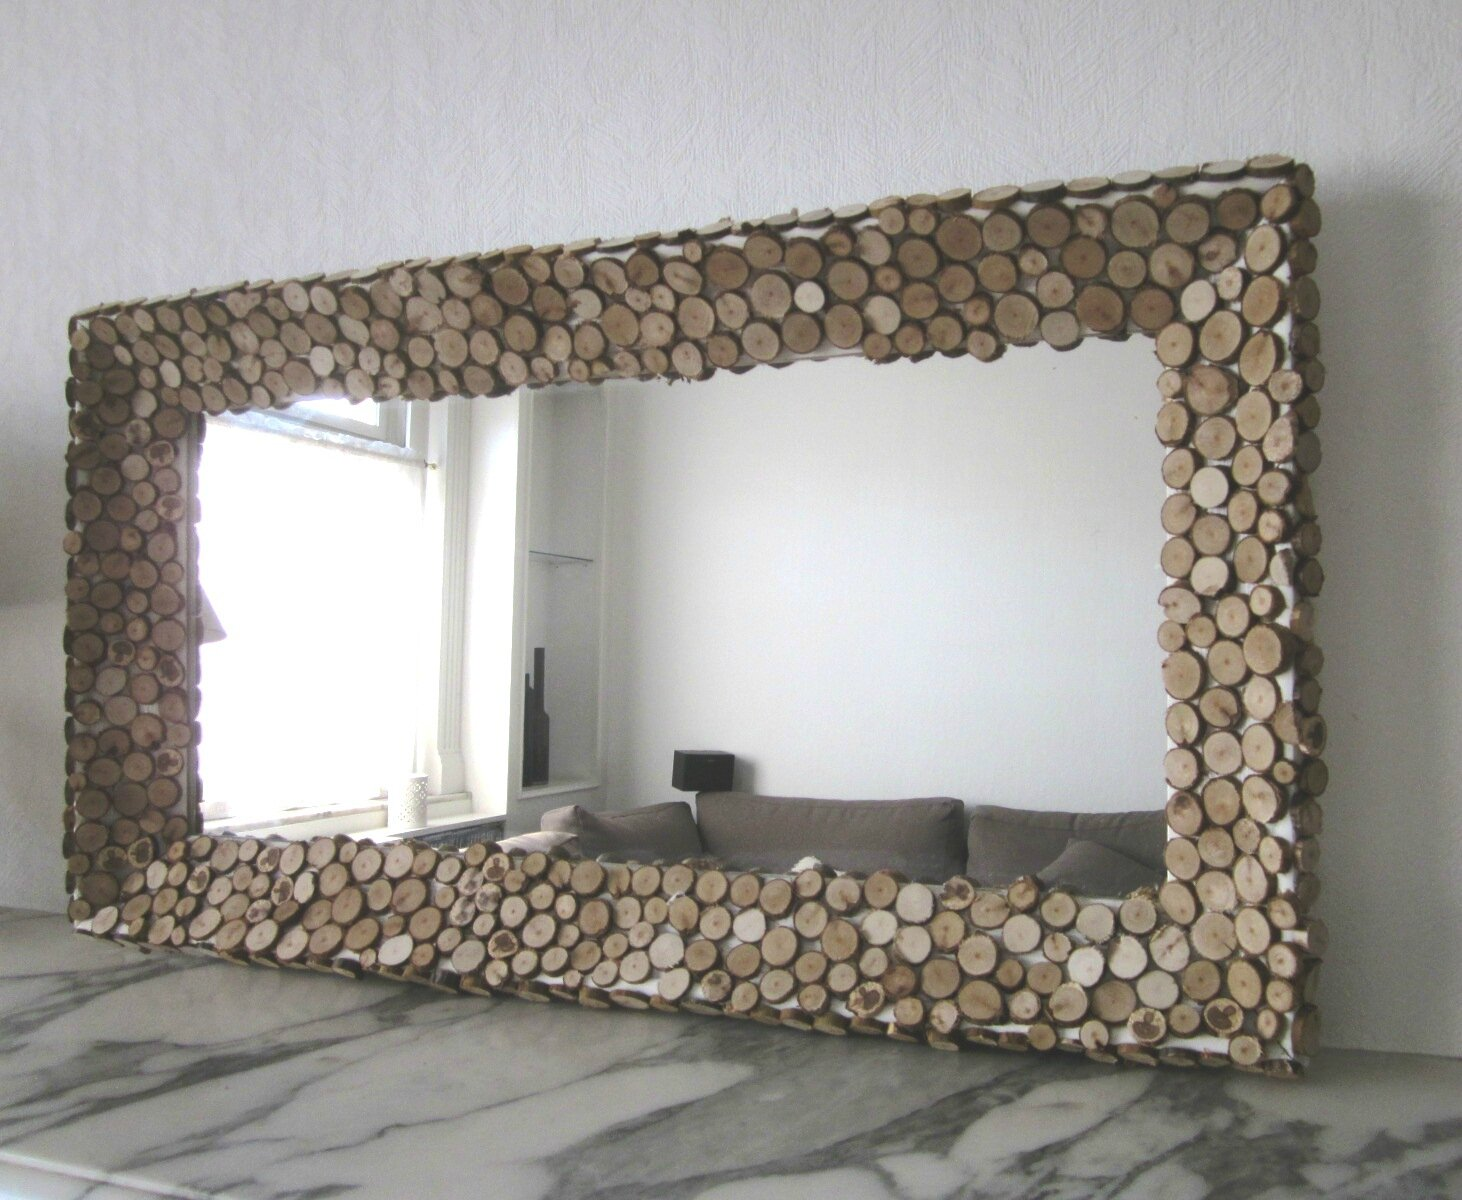 mon miroir en rondins de bois ma bulle. Black Bedroom Furniture Sets. Home Design Ideas